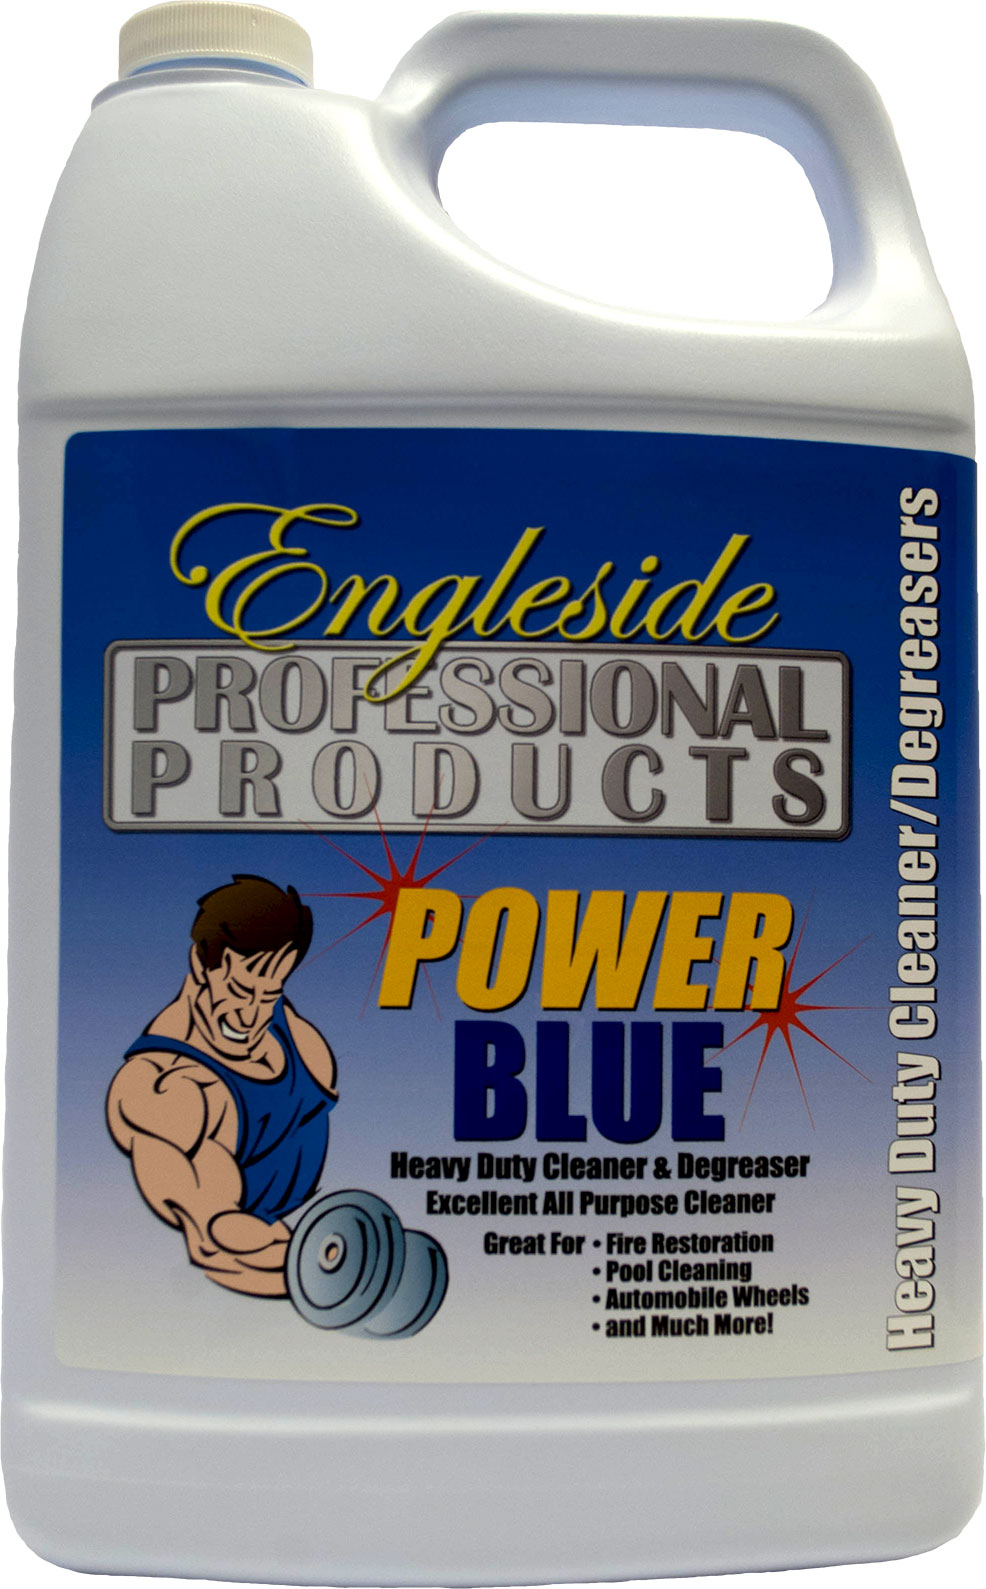 Power Blue, Engleside, Heavy Duty Cleaner, Degreaser, Cleaner, Garage Cleaner